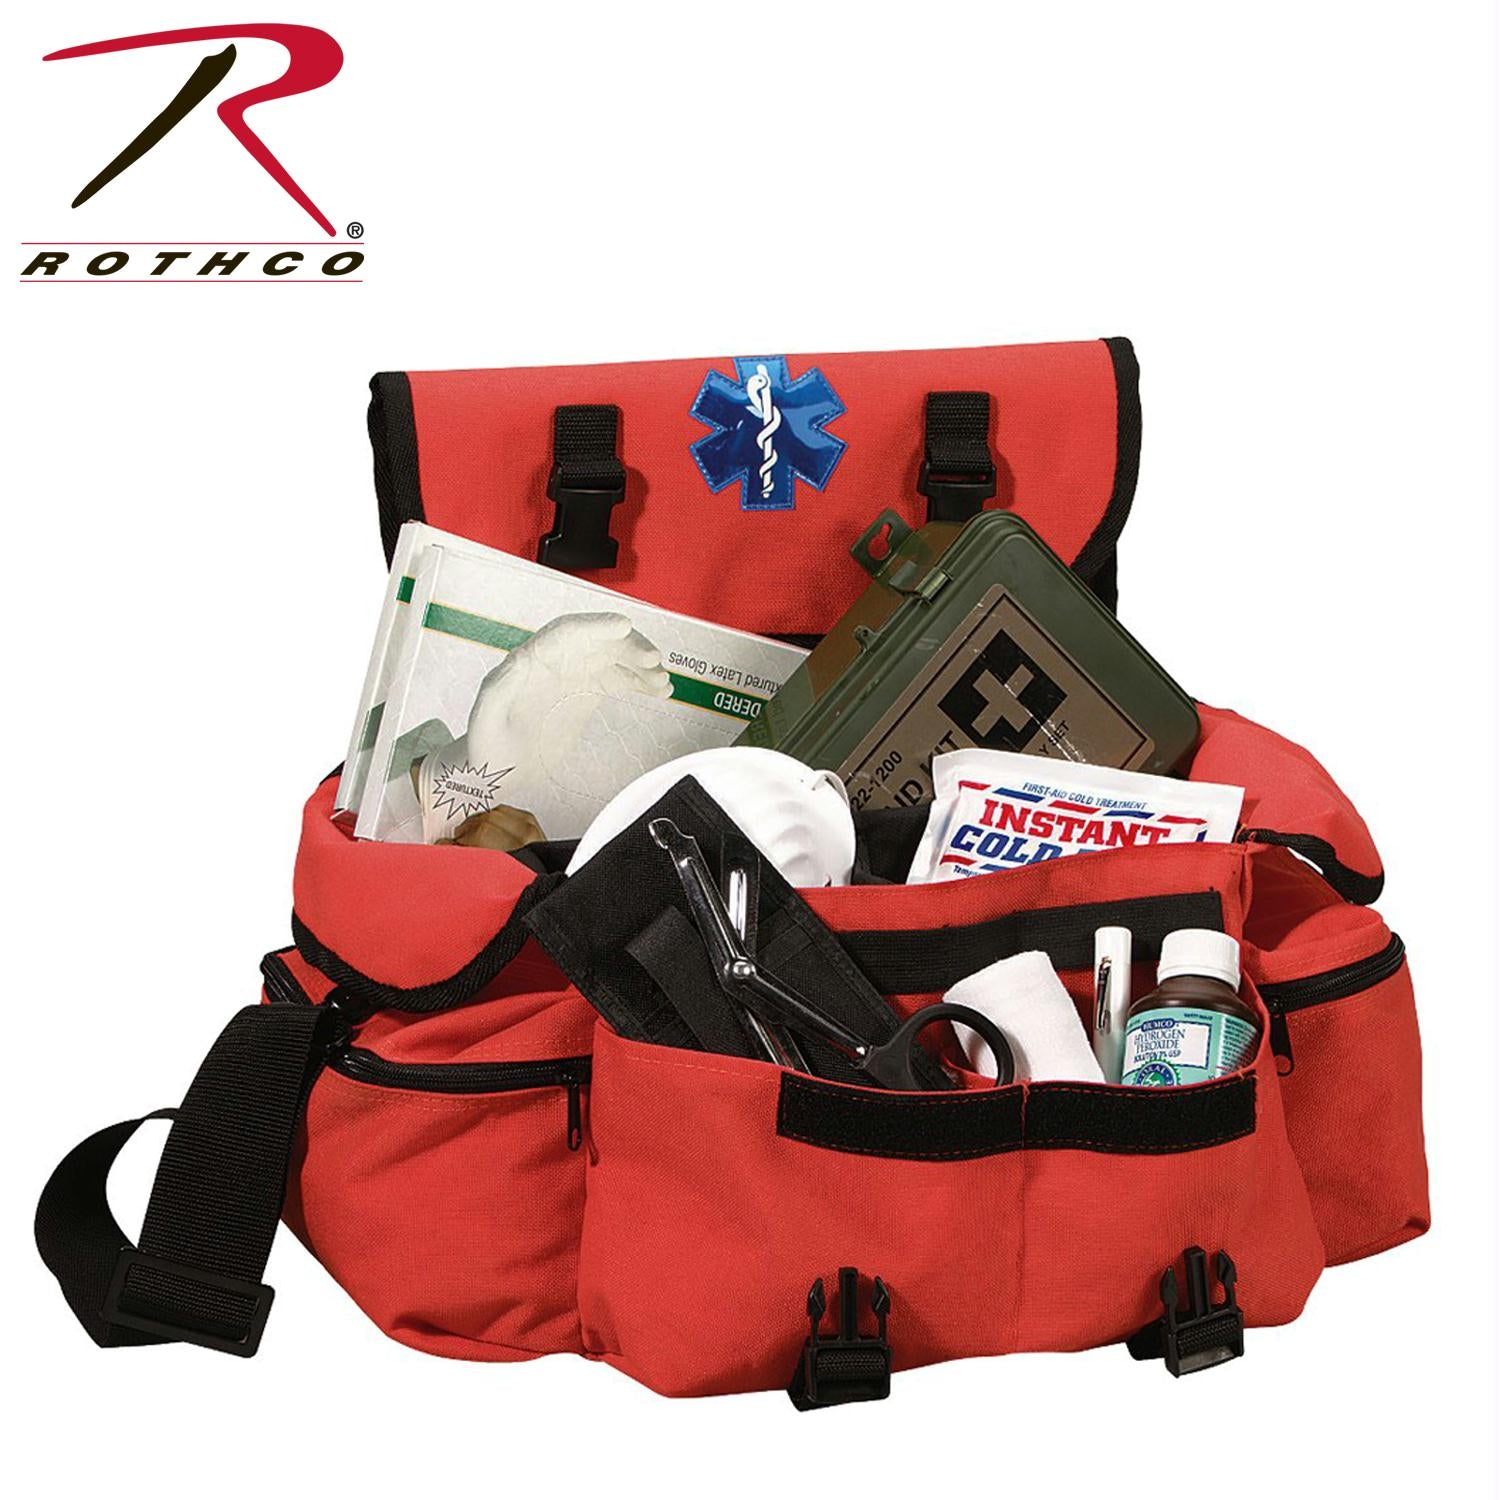 Rothco Medical Rescue Response Bag - Orange